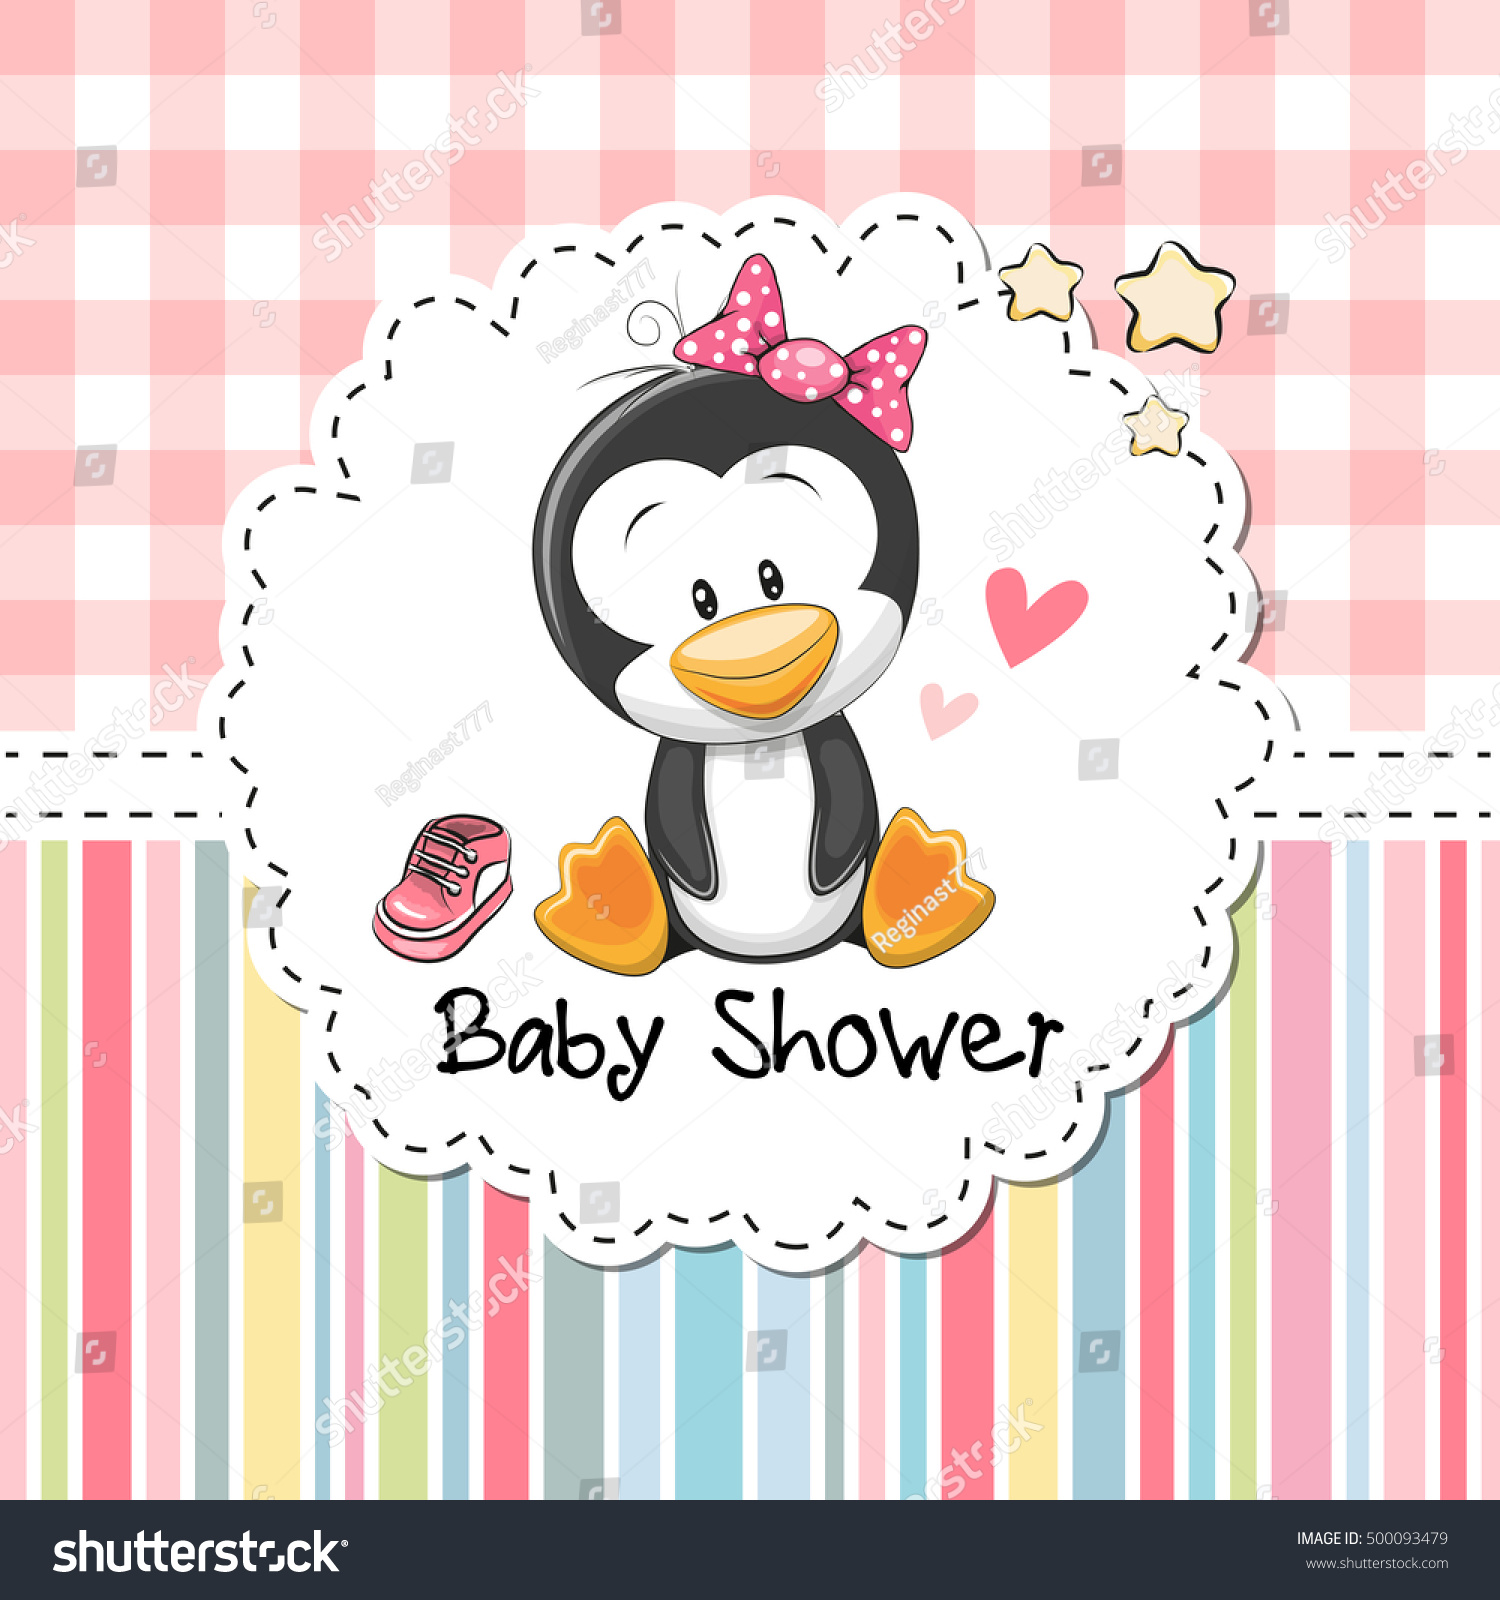 Baby Shower Greeting Card Cute Cartoon Stock Vector